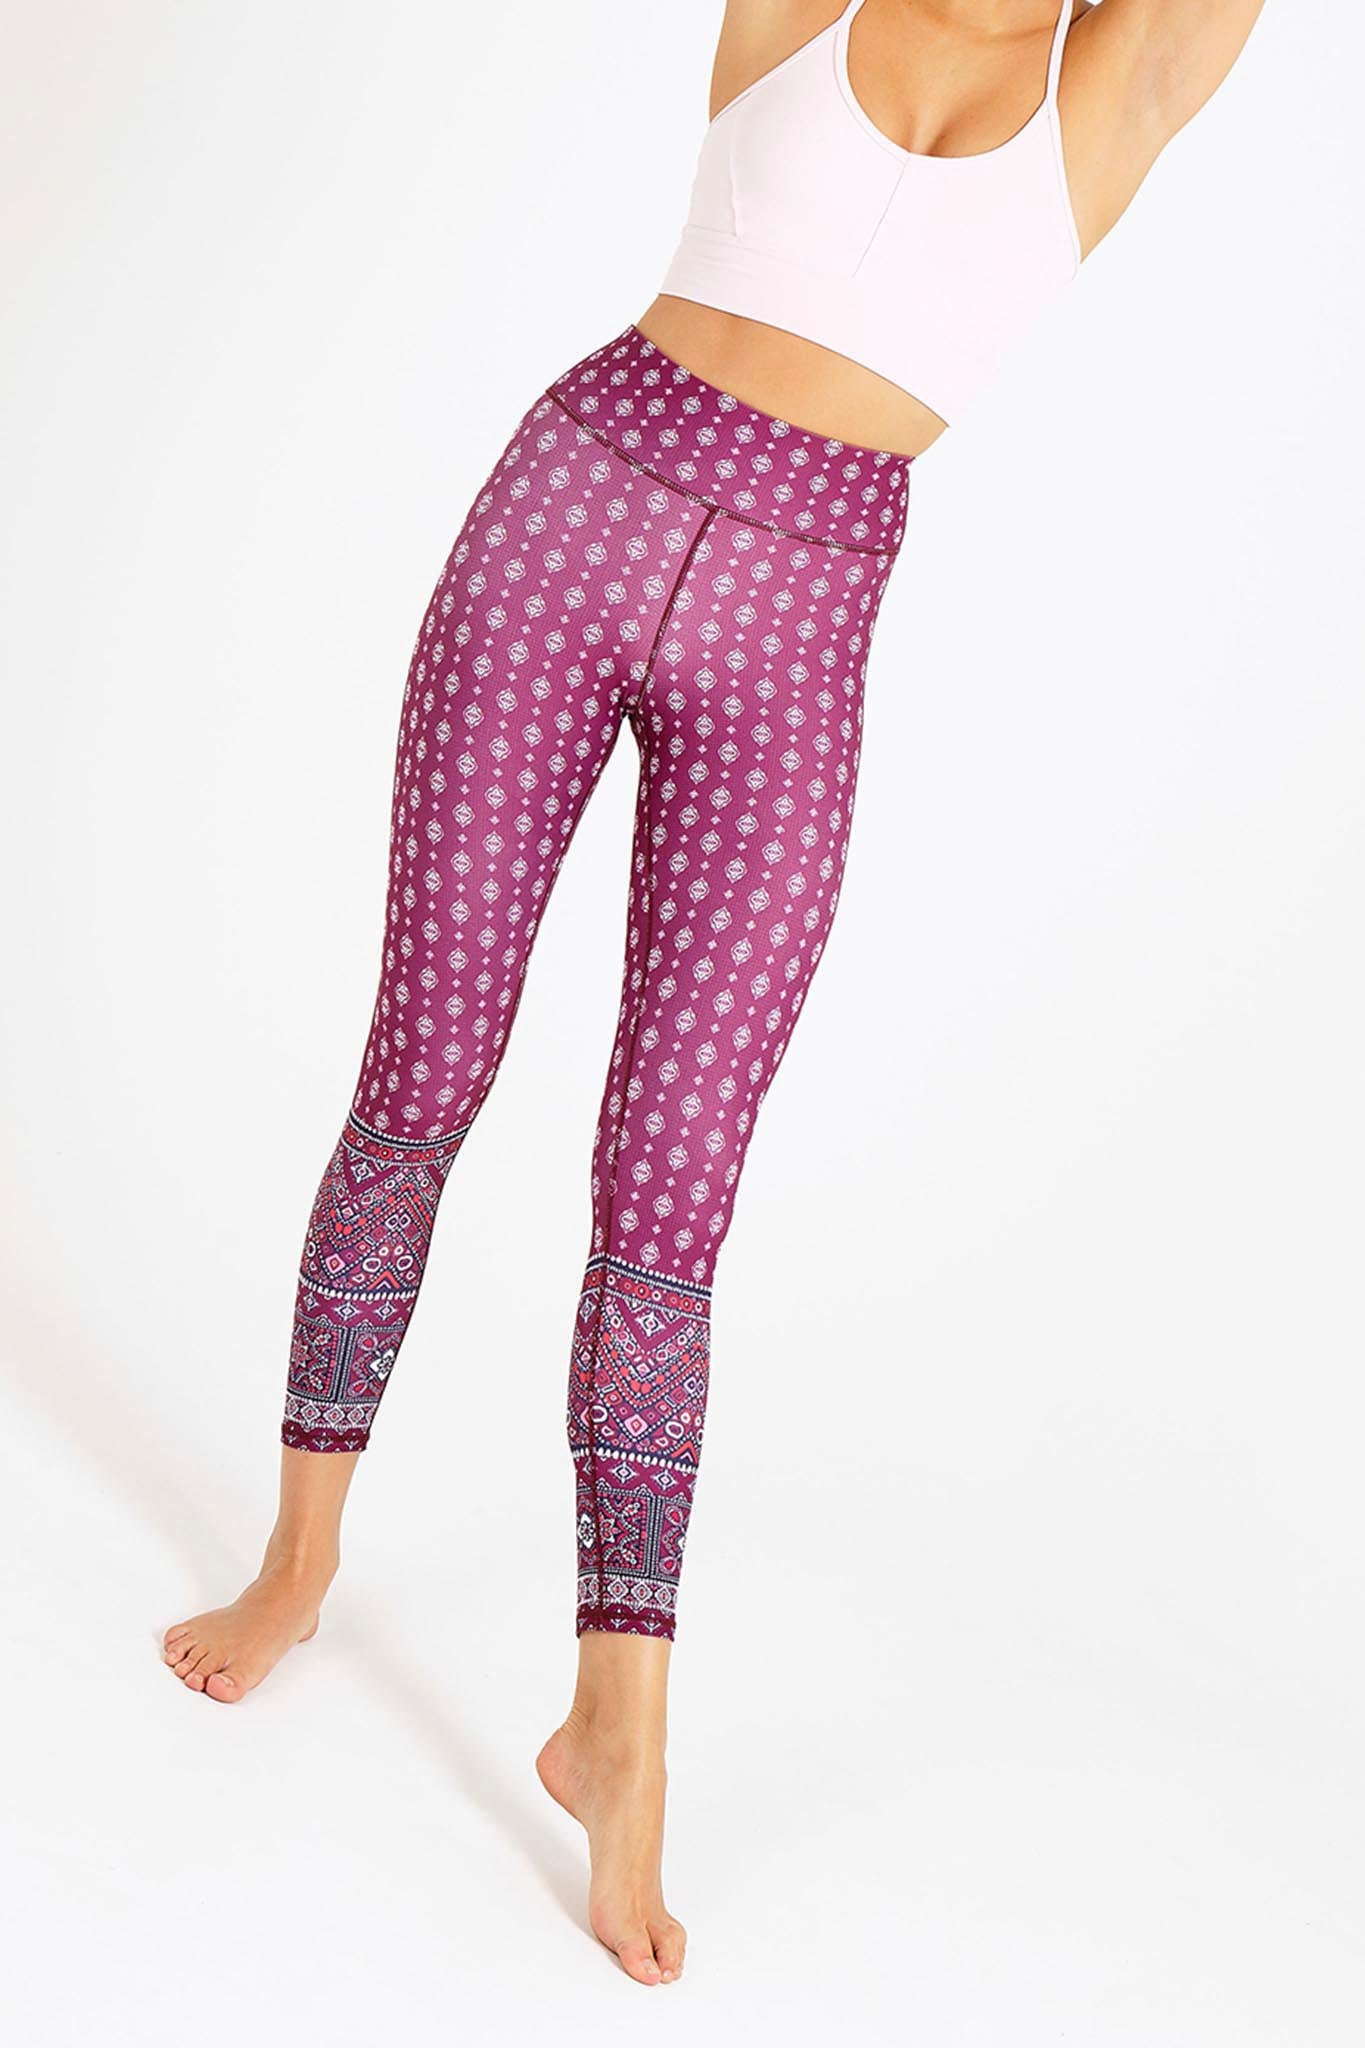 d51488775451b Spellbound High Waist Printed Legging - 7/8 | Women's Yoga and ...